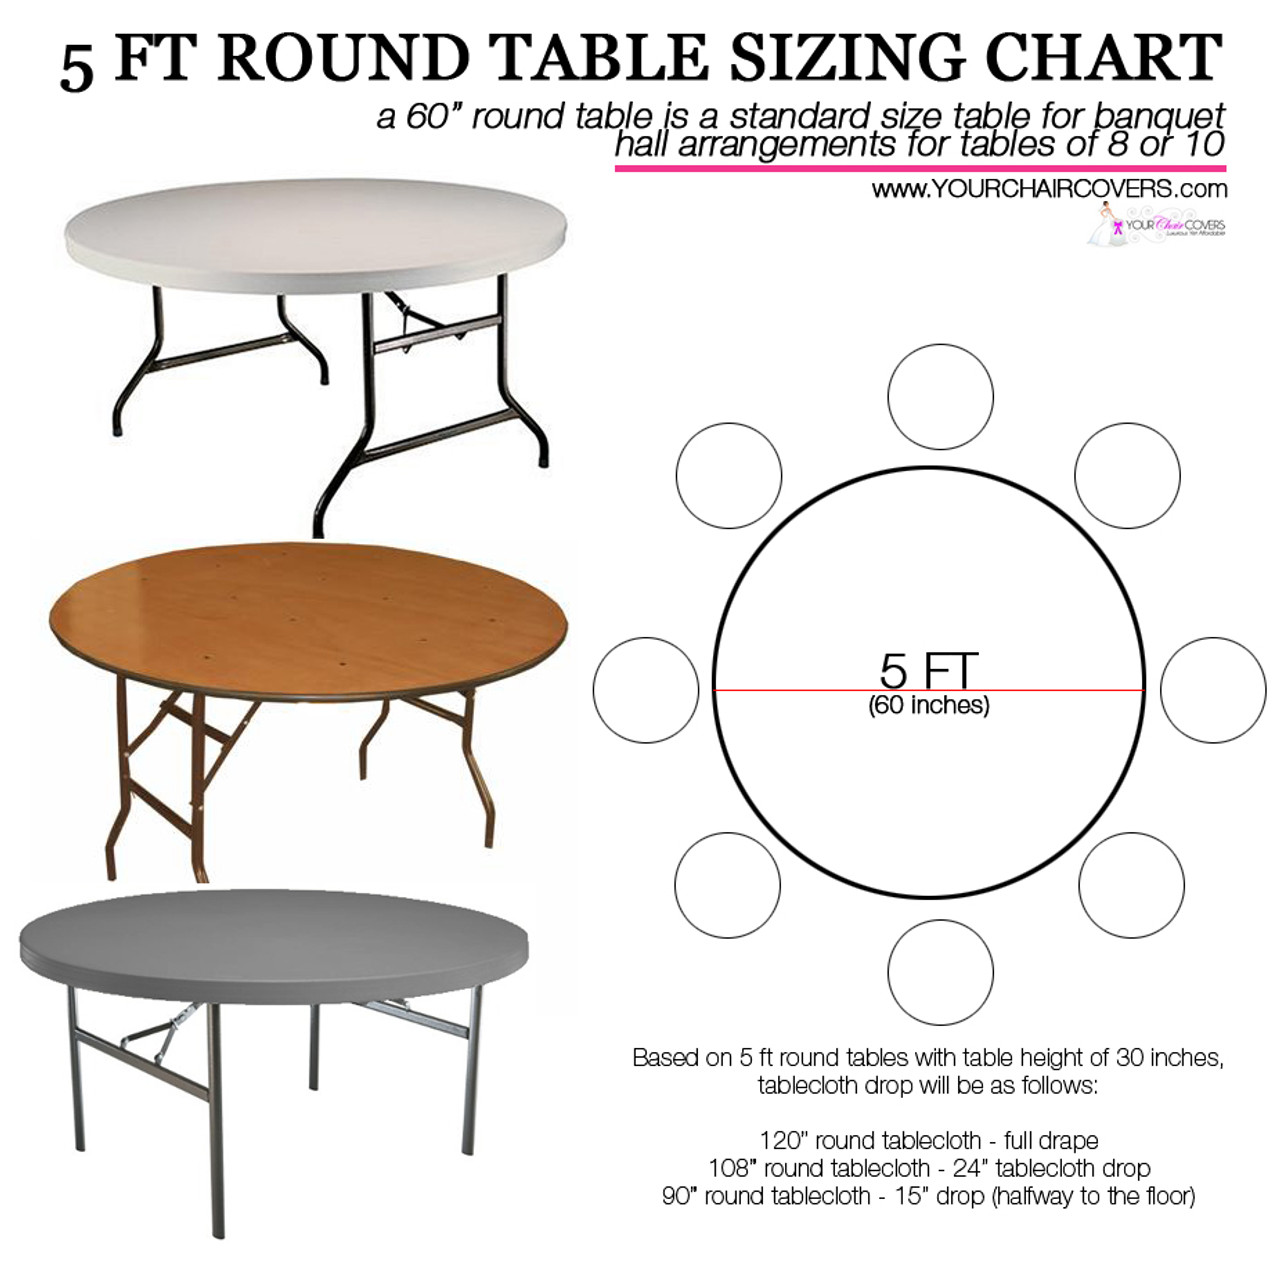 ... How To Buy Tablecloths For 5 Ft Round Tables? Use This Tablecloth  Sizing Guide,